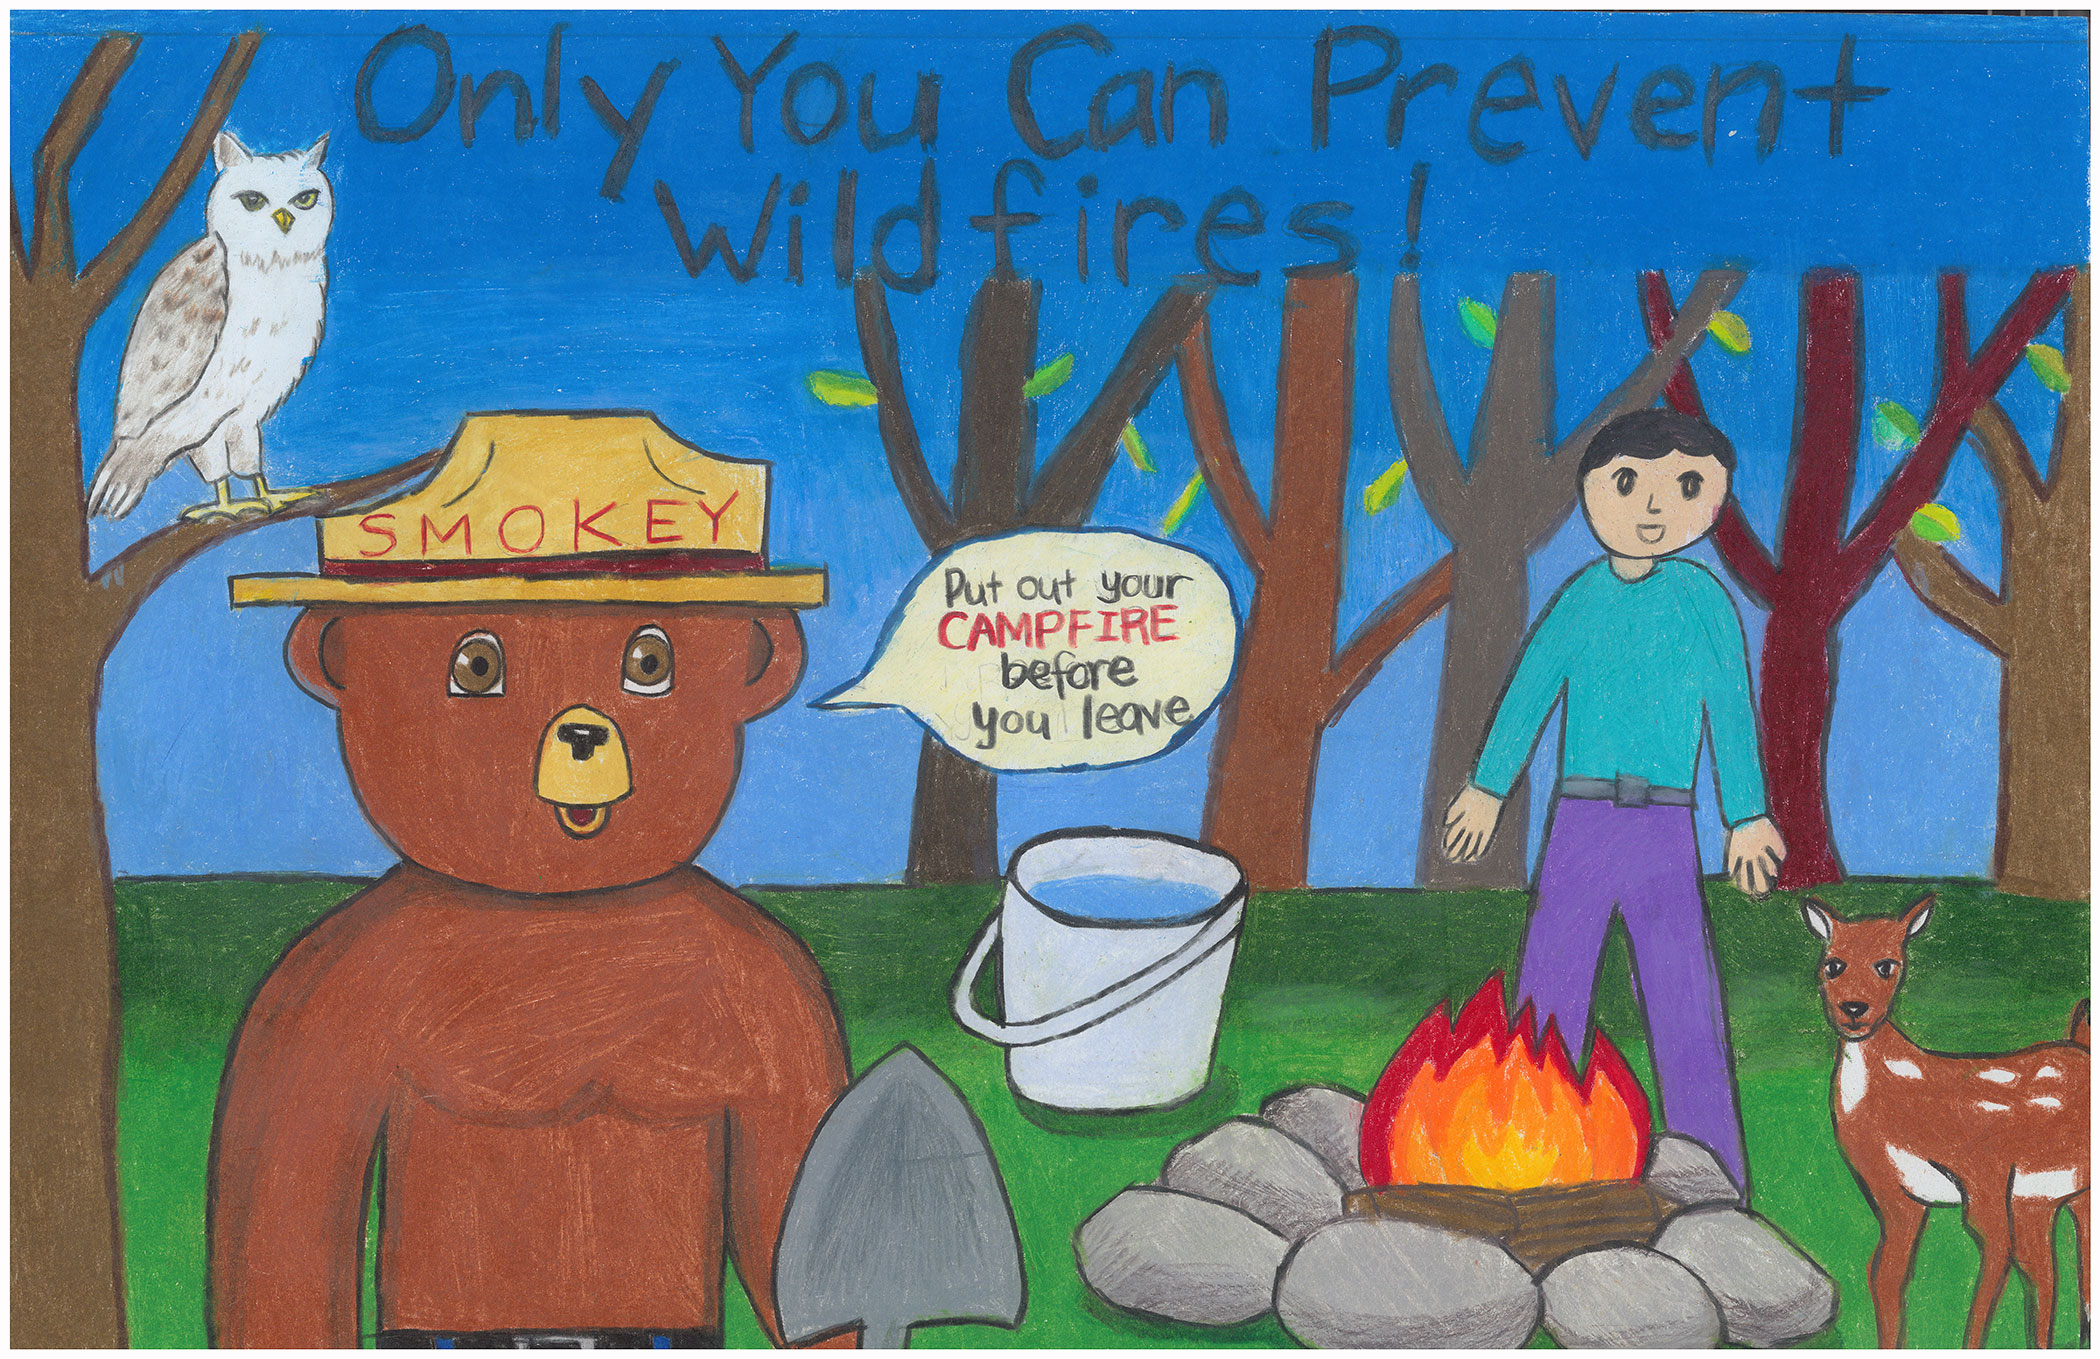 Smokey Bear & Woodsy Owl Poster Contest entry